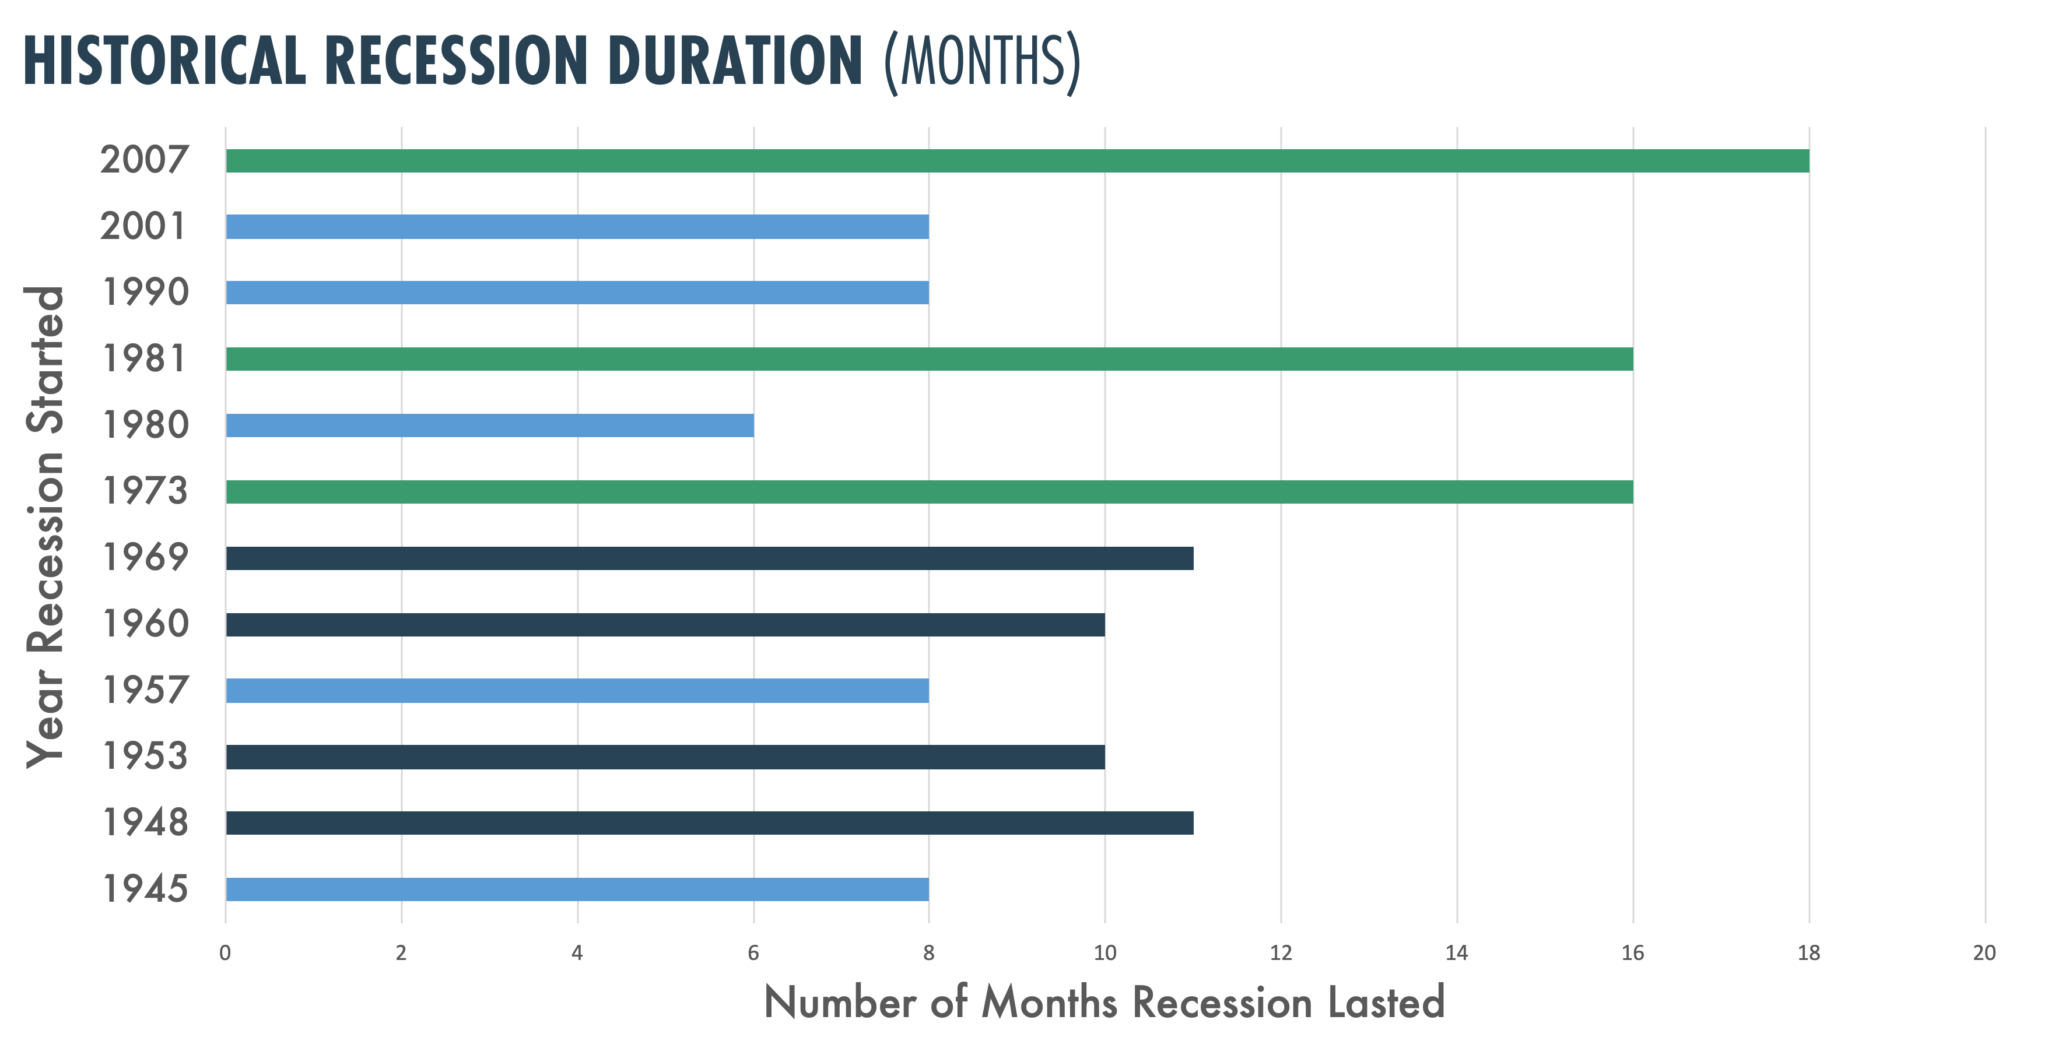 Historical Recession Duration